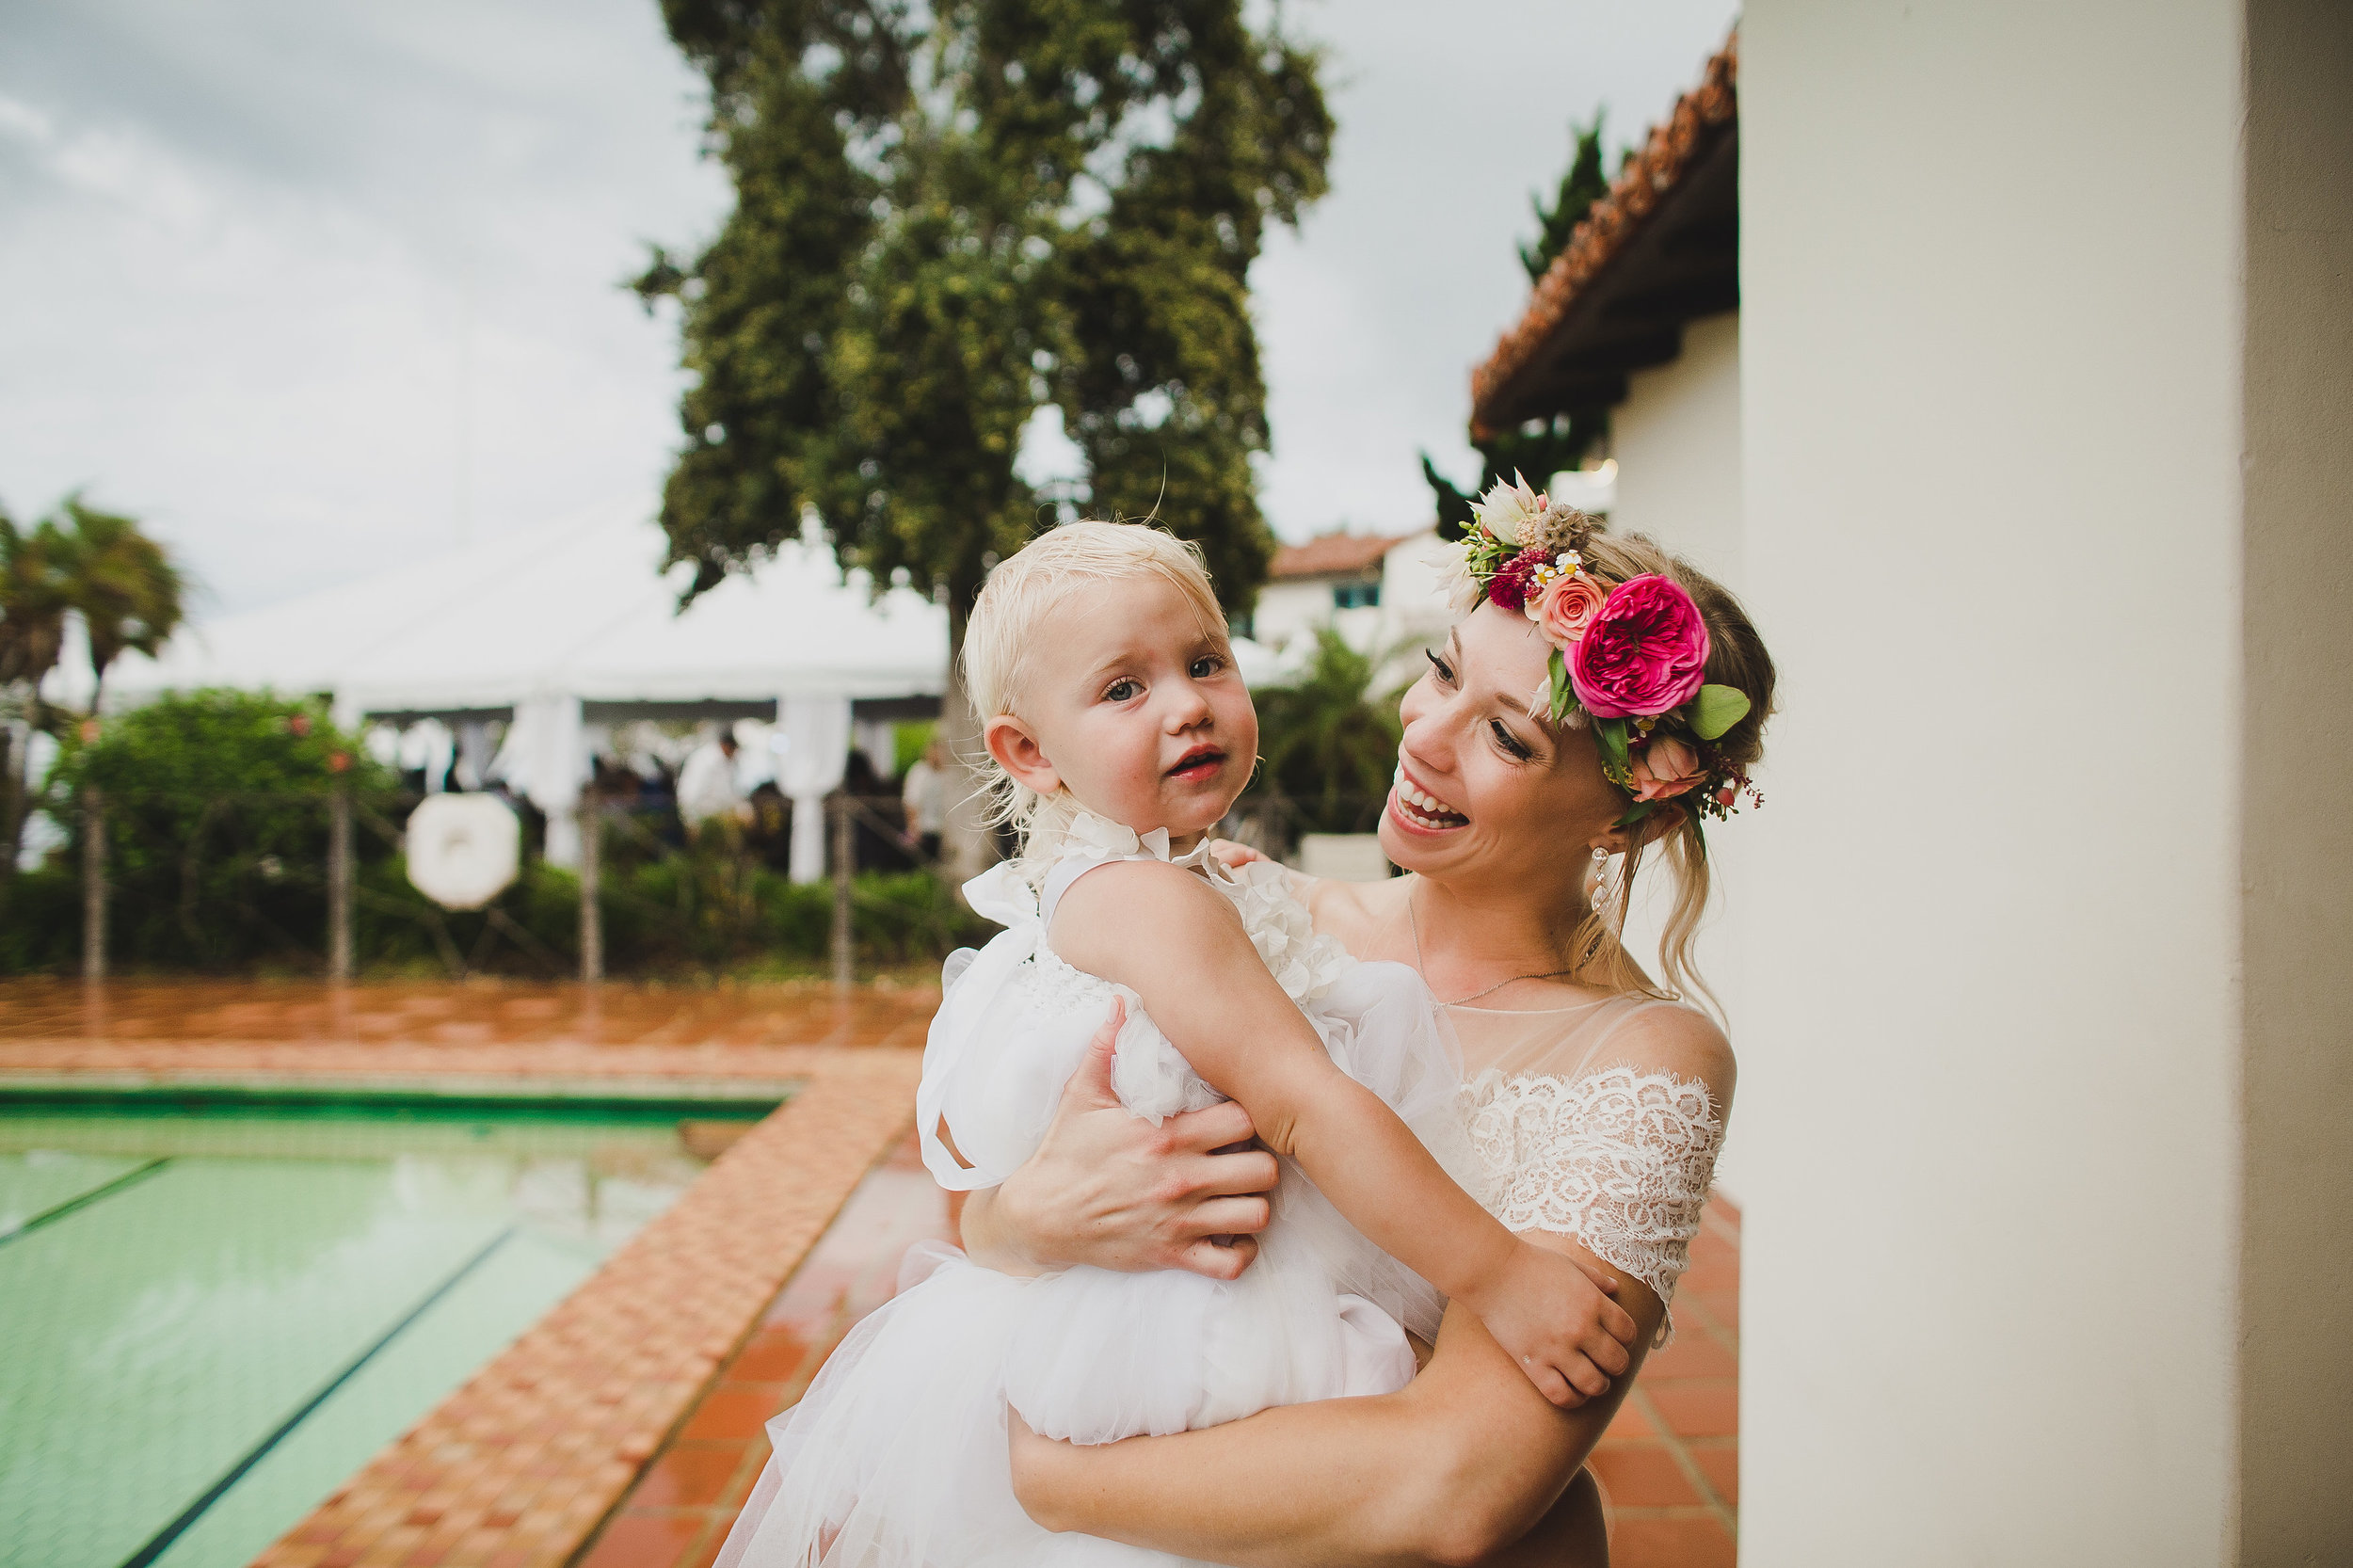 Pink and Peach Wildflower wedding at the Adamson House in Malibu. Image by  Kym Ventola .